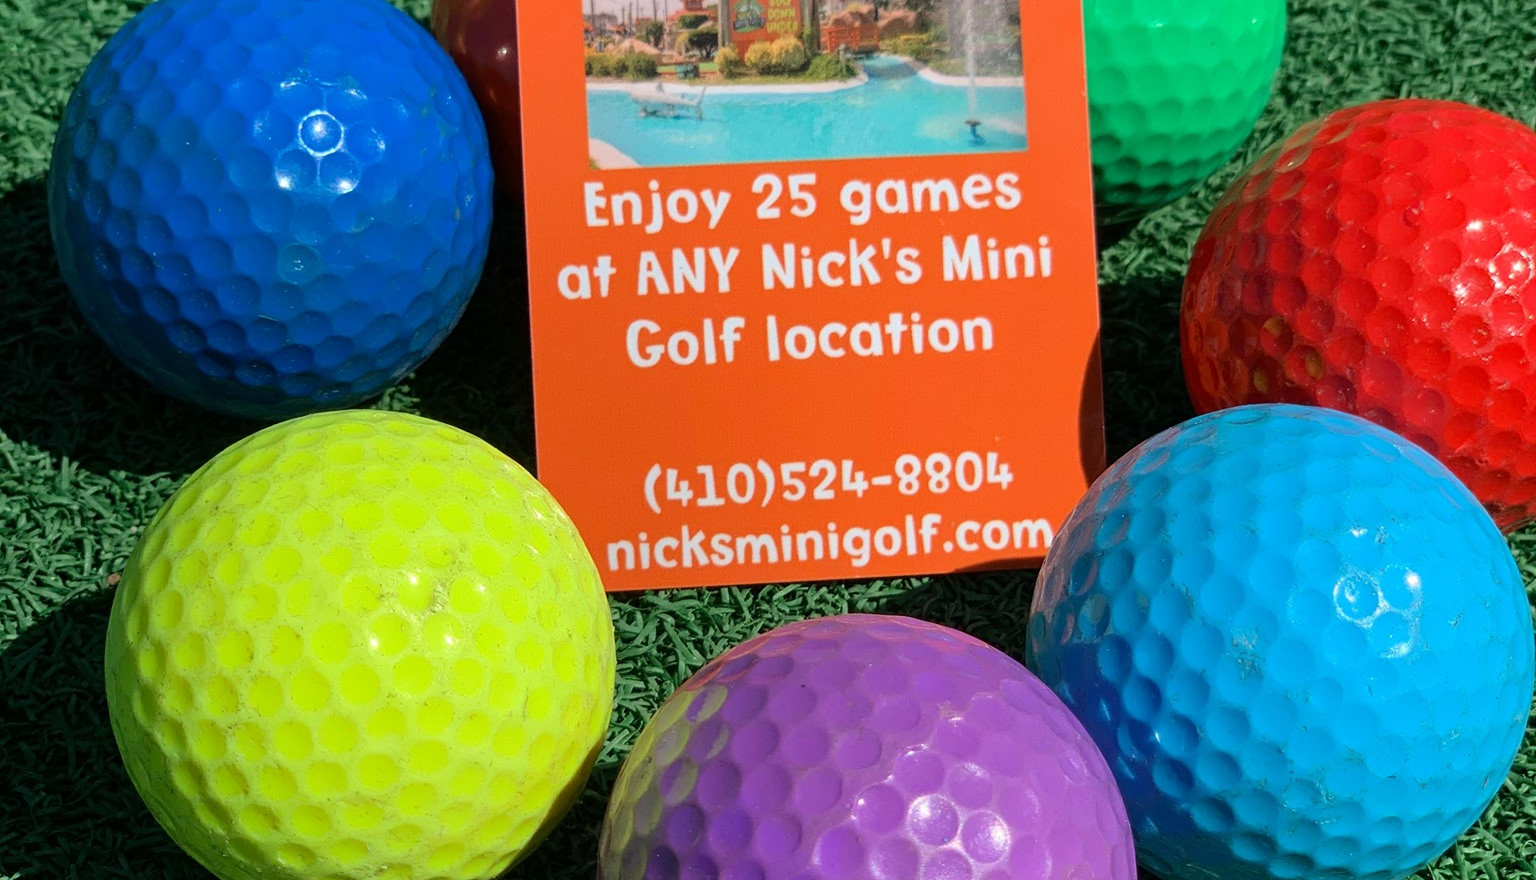 #3 Nick's Mini Golf Frequent Putter/Season Passes